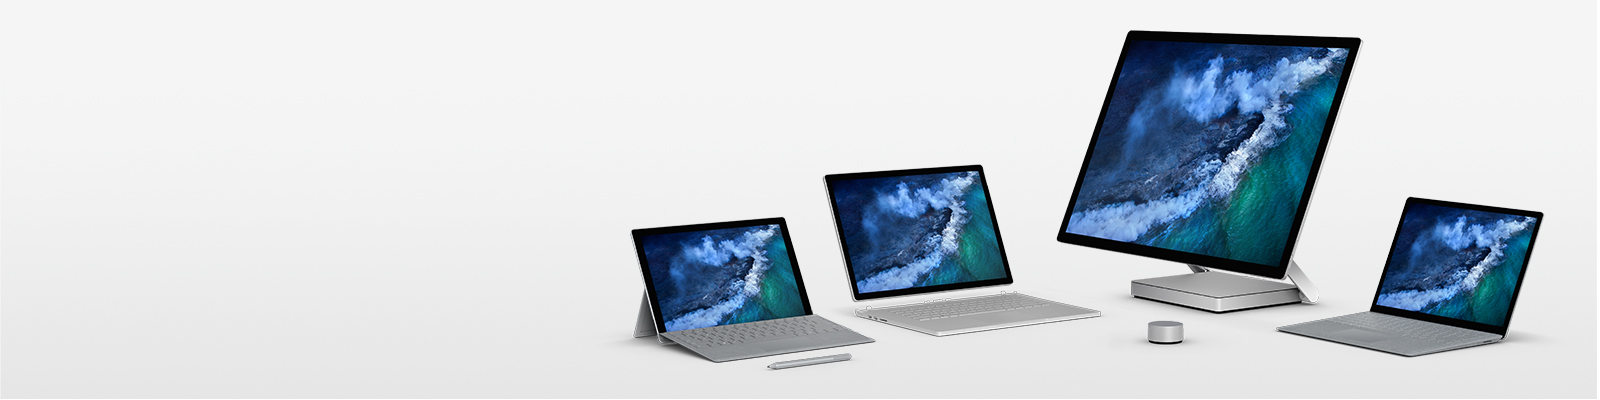 Surface Pro, Surface Laptop, Surface Book 2 und Surface Studio mit Surface Pen und Surface Dial abgebildet